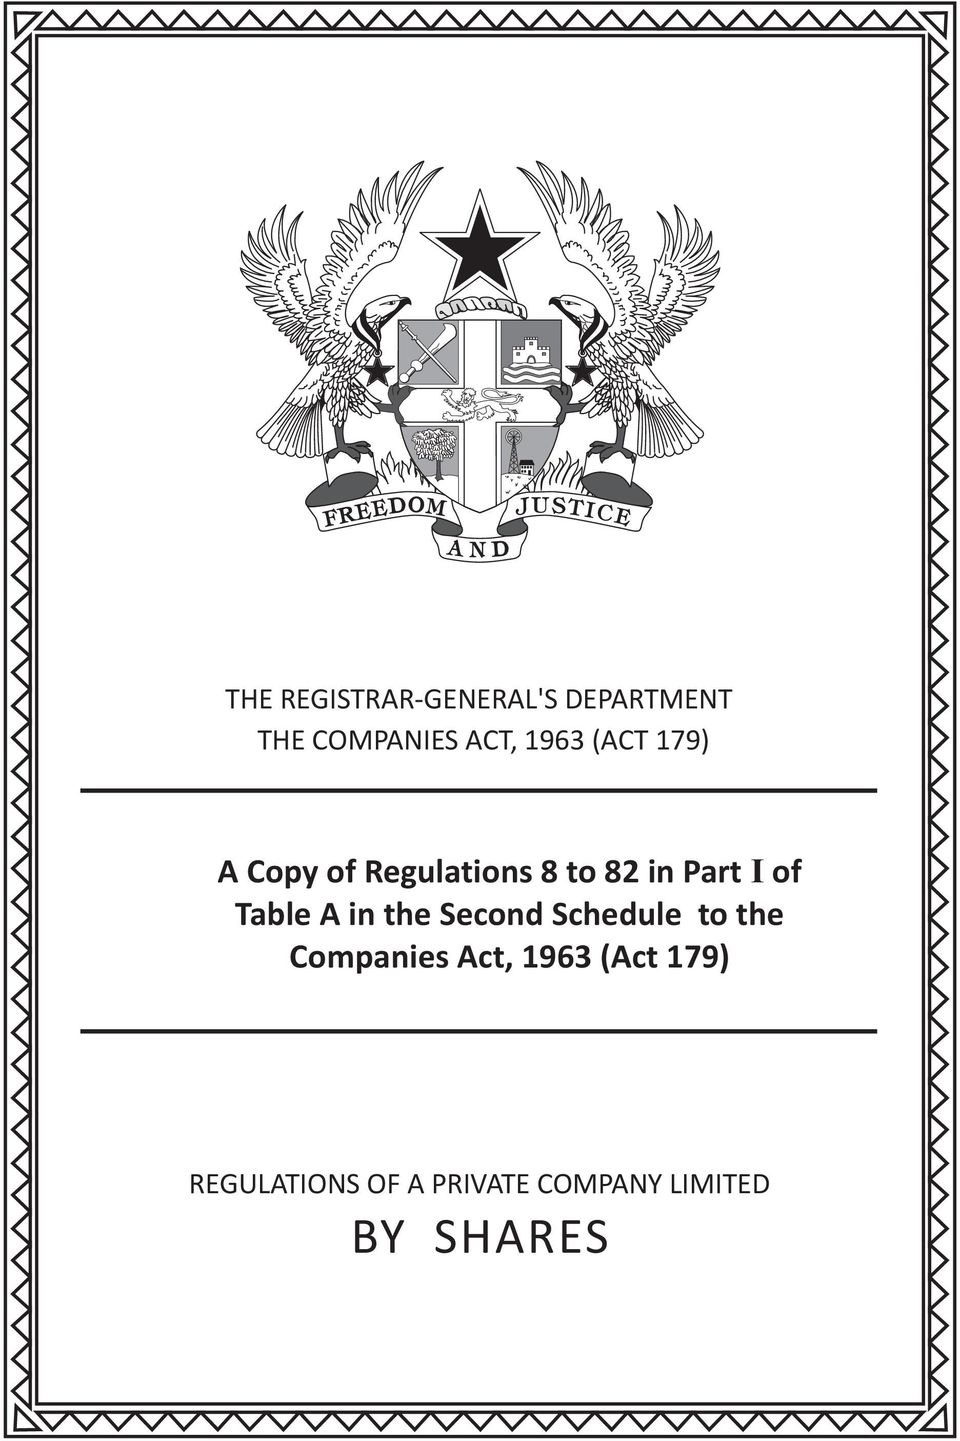 Table A in the Second Schedule to the Companies Act, 1963